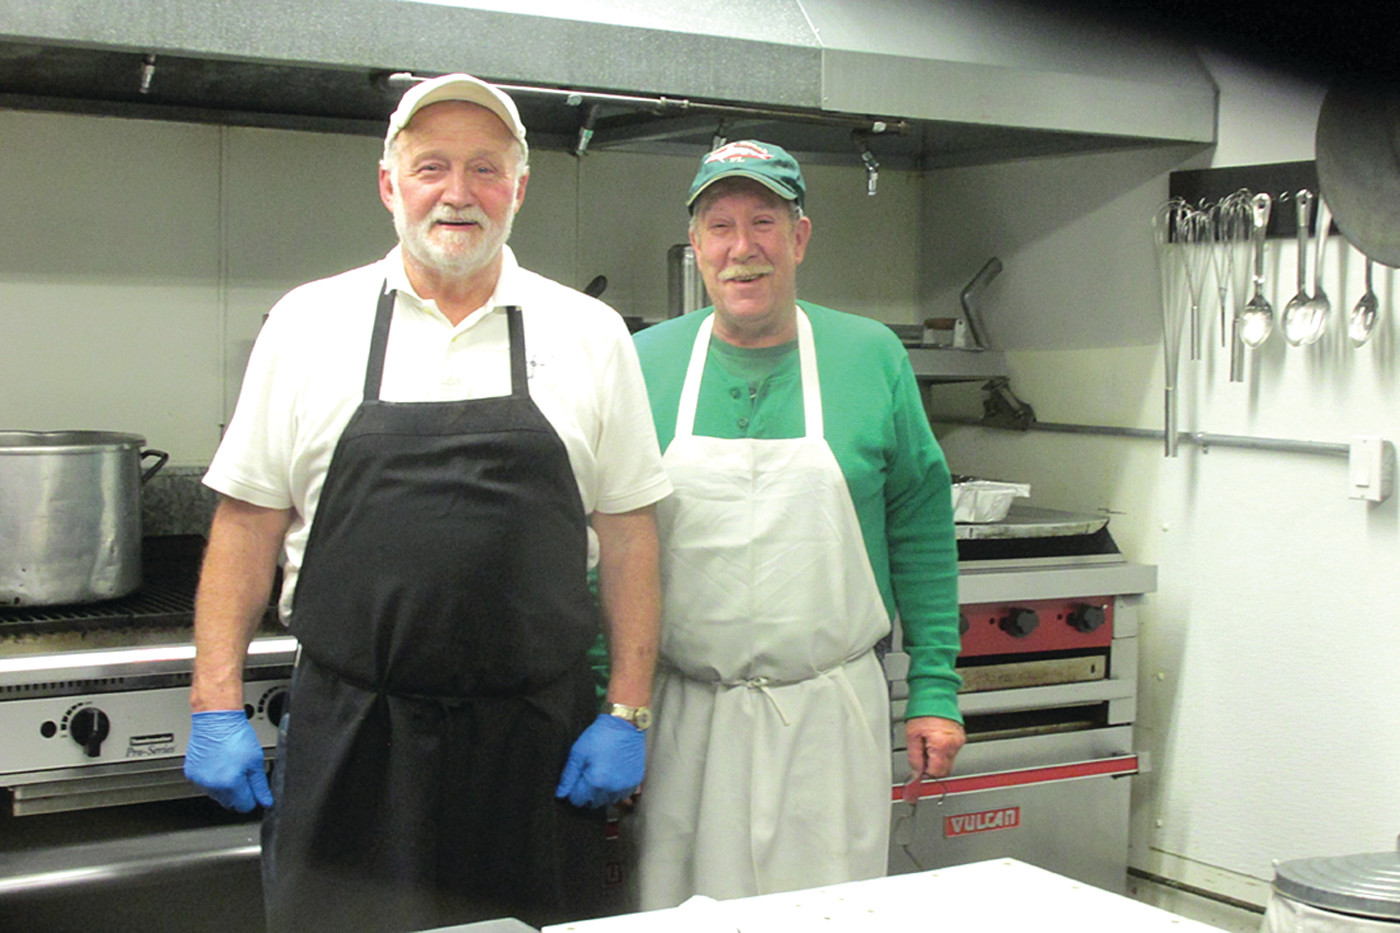 COOK'S CORNER: Bob Hartington (left) and Steve Lagesse prepared and cooked Saturday night's St. Patrick's Corned Beef and Cabbage Dinner that drew rave reviews from all 150 attendees.